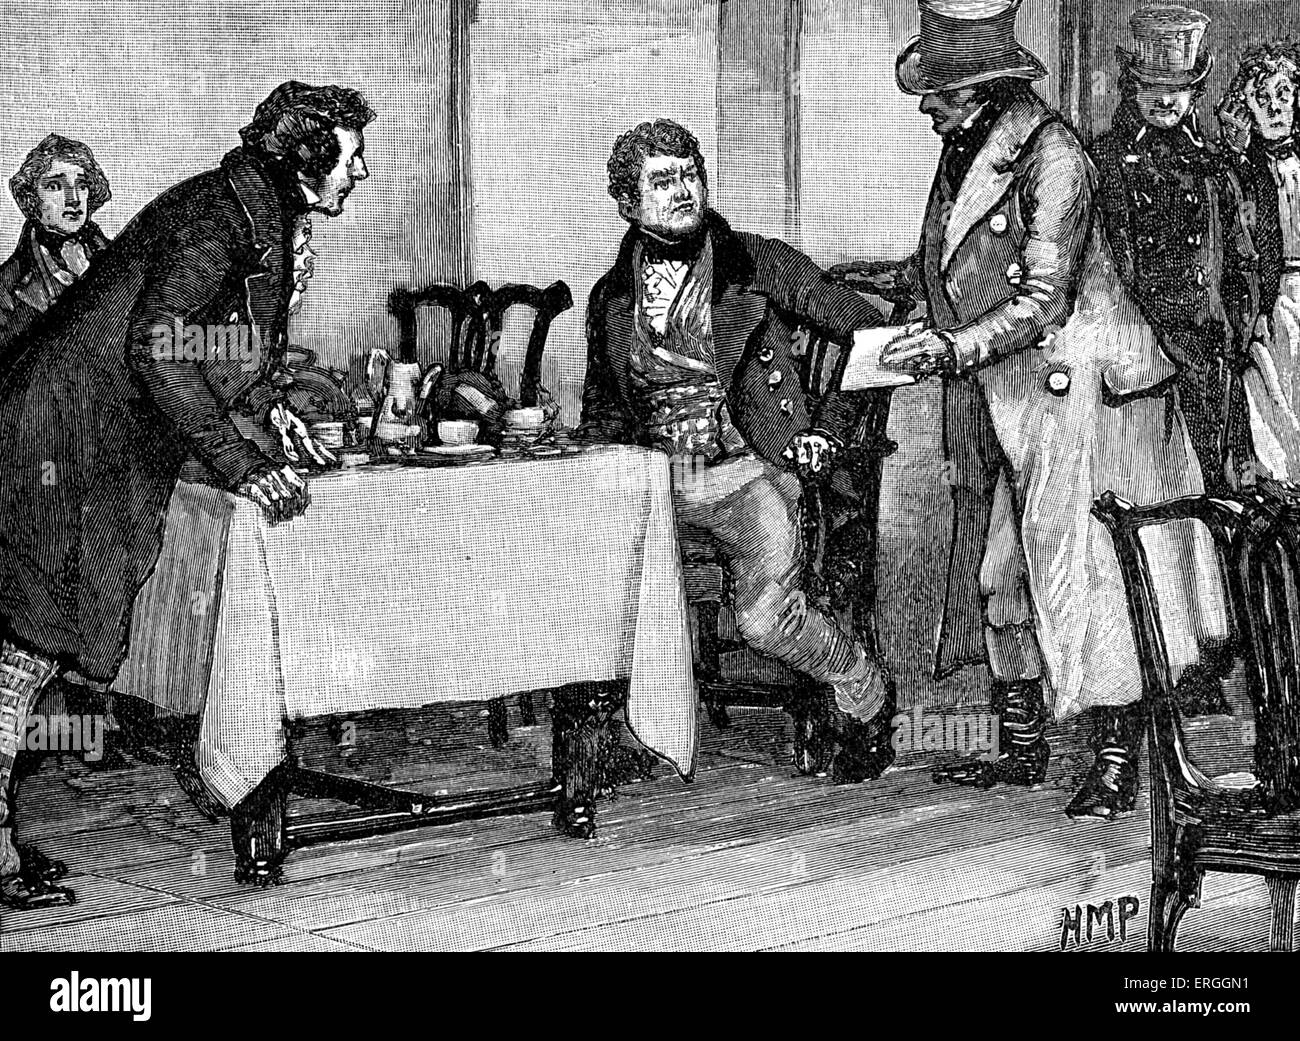 Daniel O'Connell 's arrest for conspiracy after attending campaign meeting for repeal of 1801 Act of Union, - Stock Image